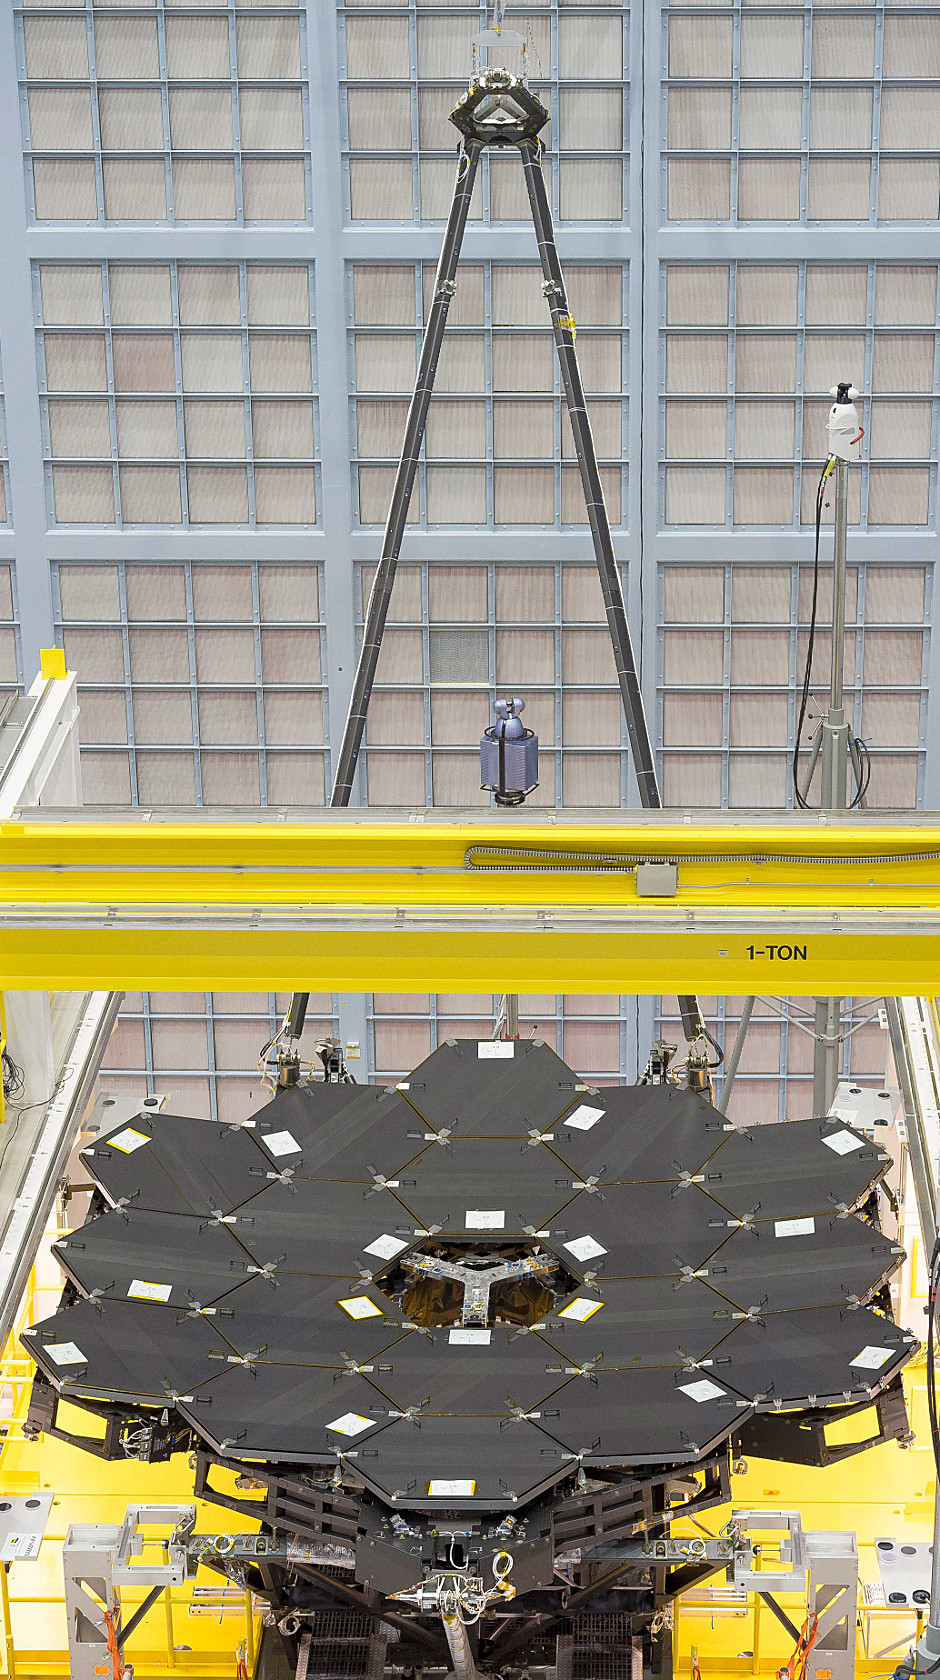 In this rare view, the James Webb Space Telescope's 18 mirrors (with their protective covers on) are seen fully installed on the James Webb Space Telescope structure at NASA's Goddard Space Flight Center in Greenbelt, Maryland. Click the image for a full-size version. Image credits: NASA/Chris Gunn.